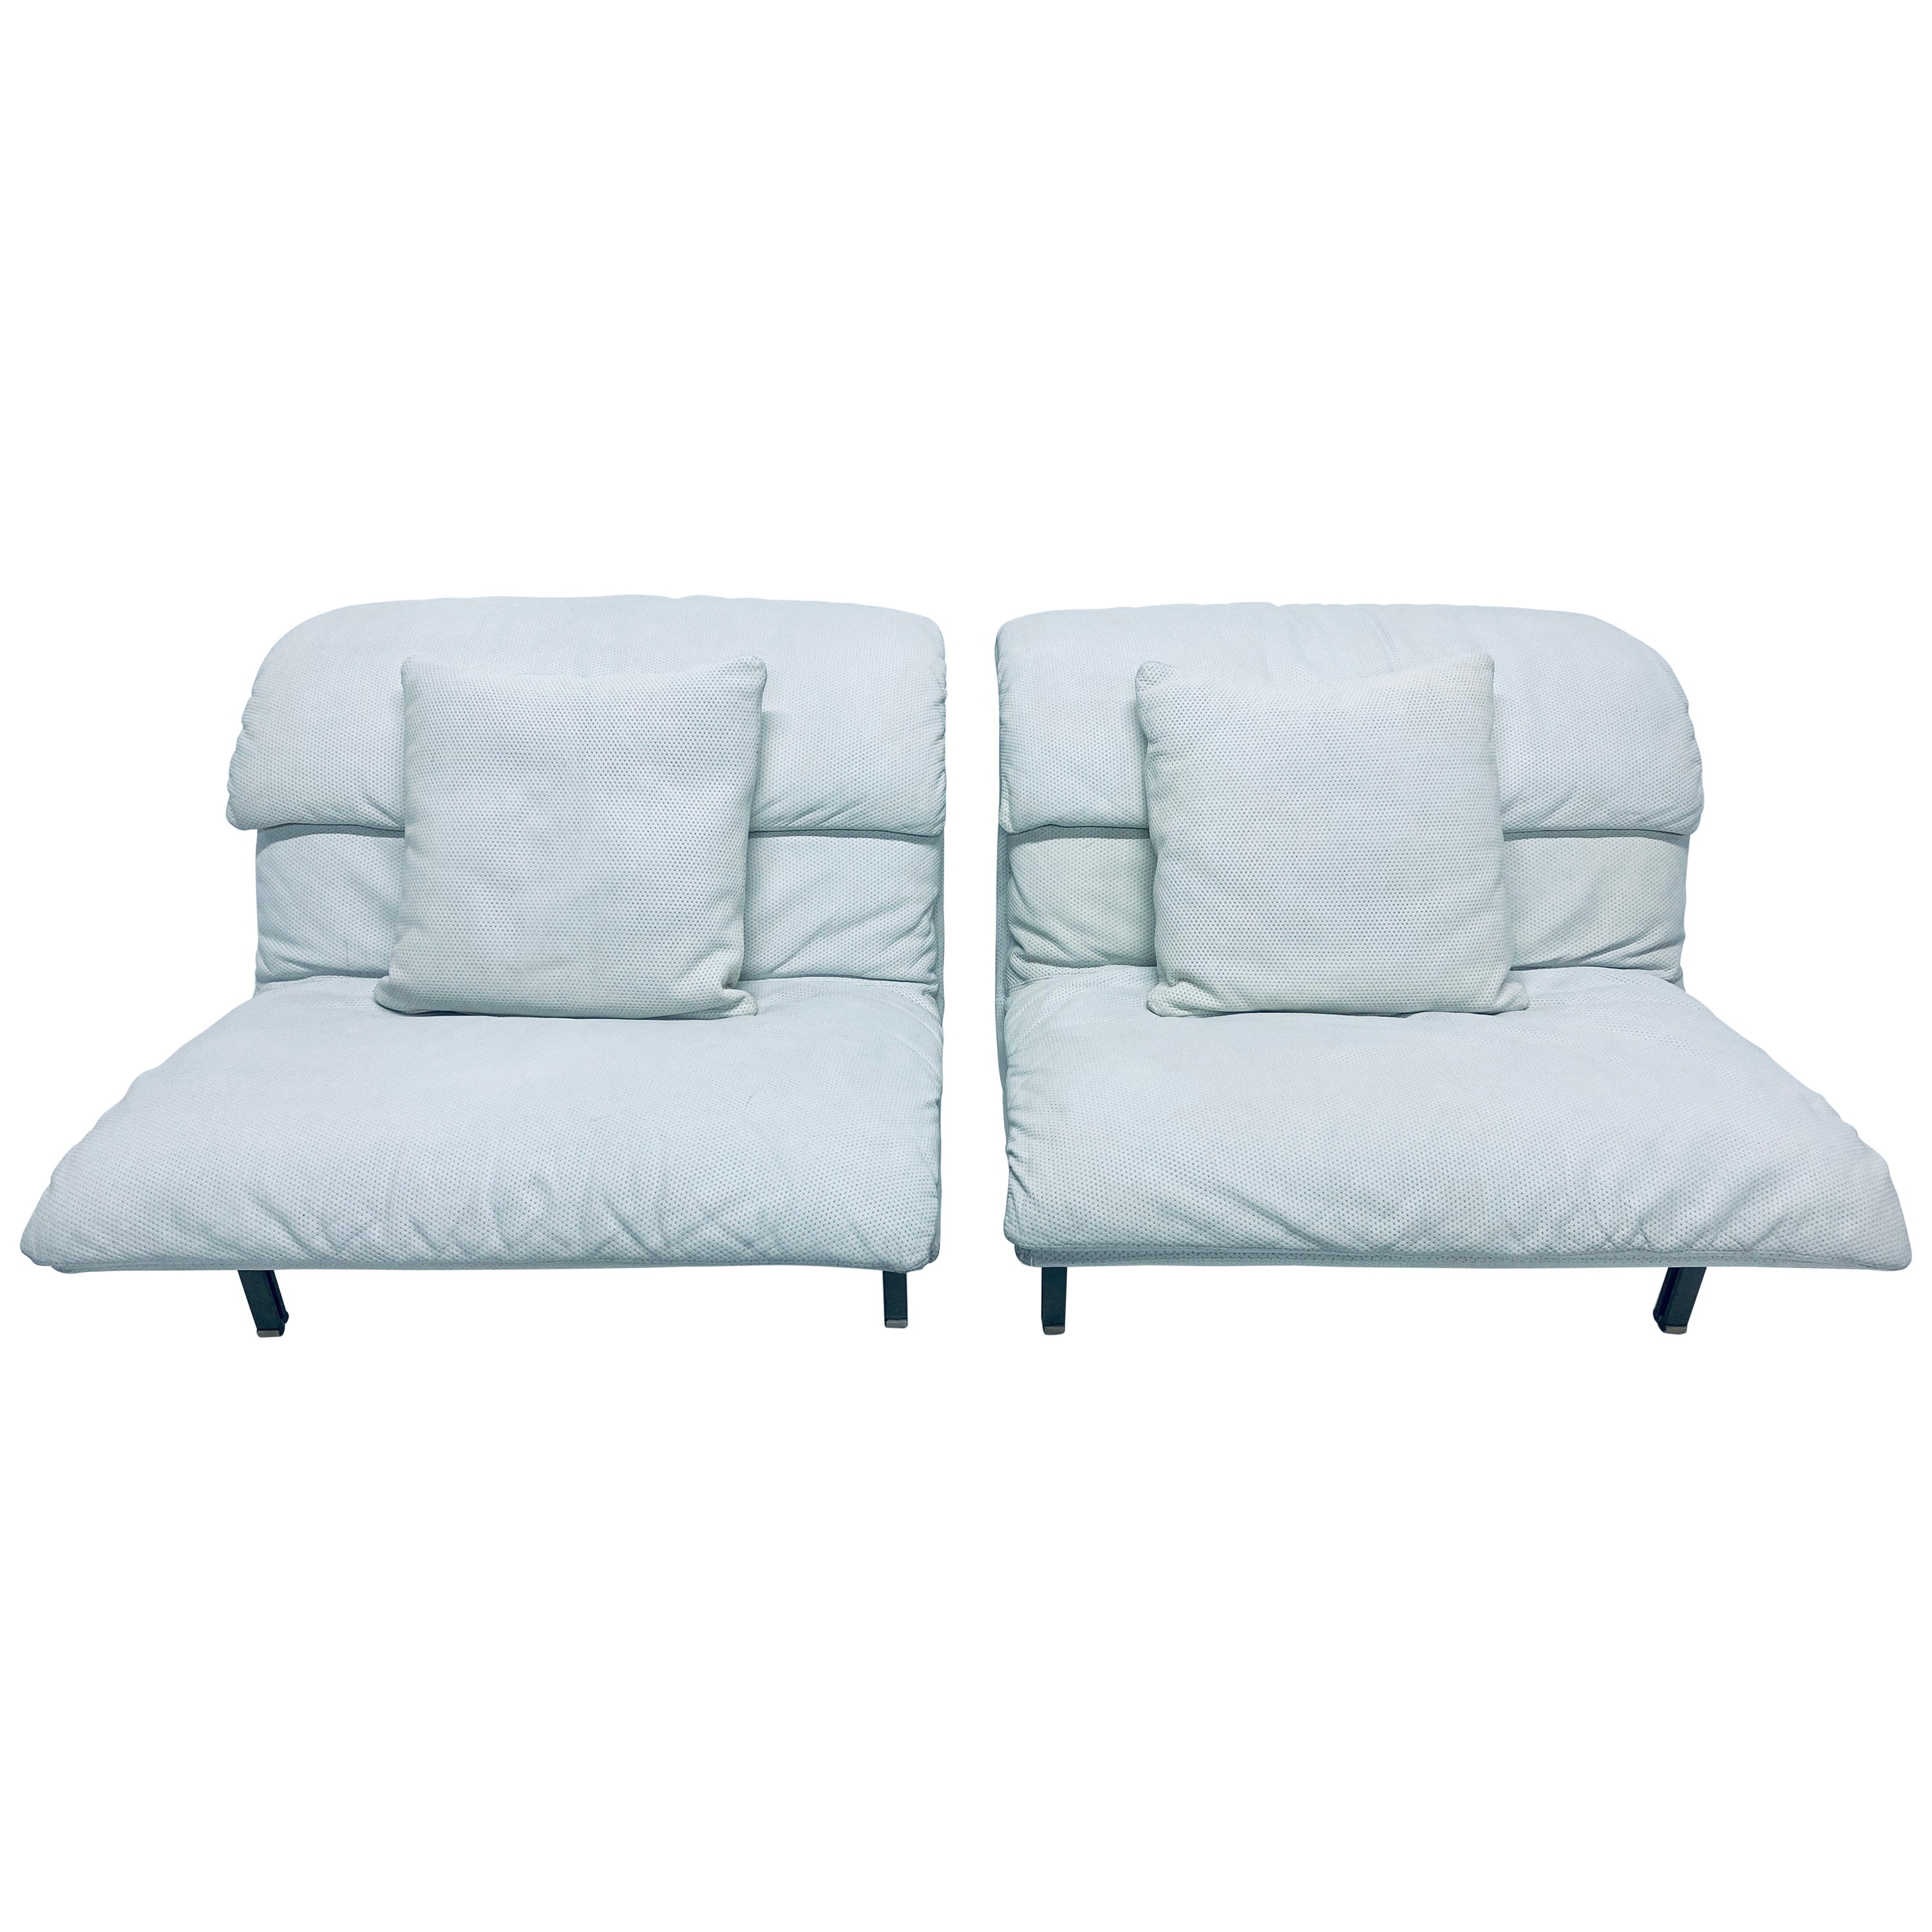 Pair of Giovanni Offredi White Leather Onda Wave Lounge Chairs for Saporiti